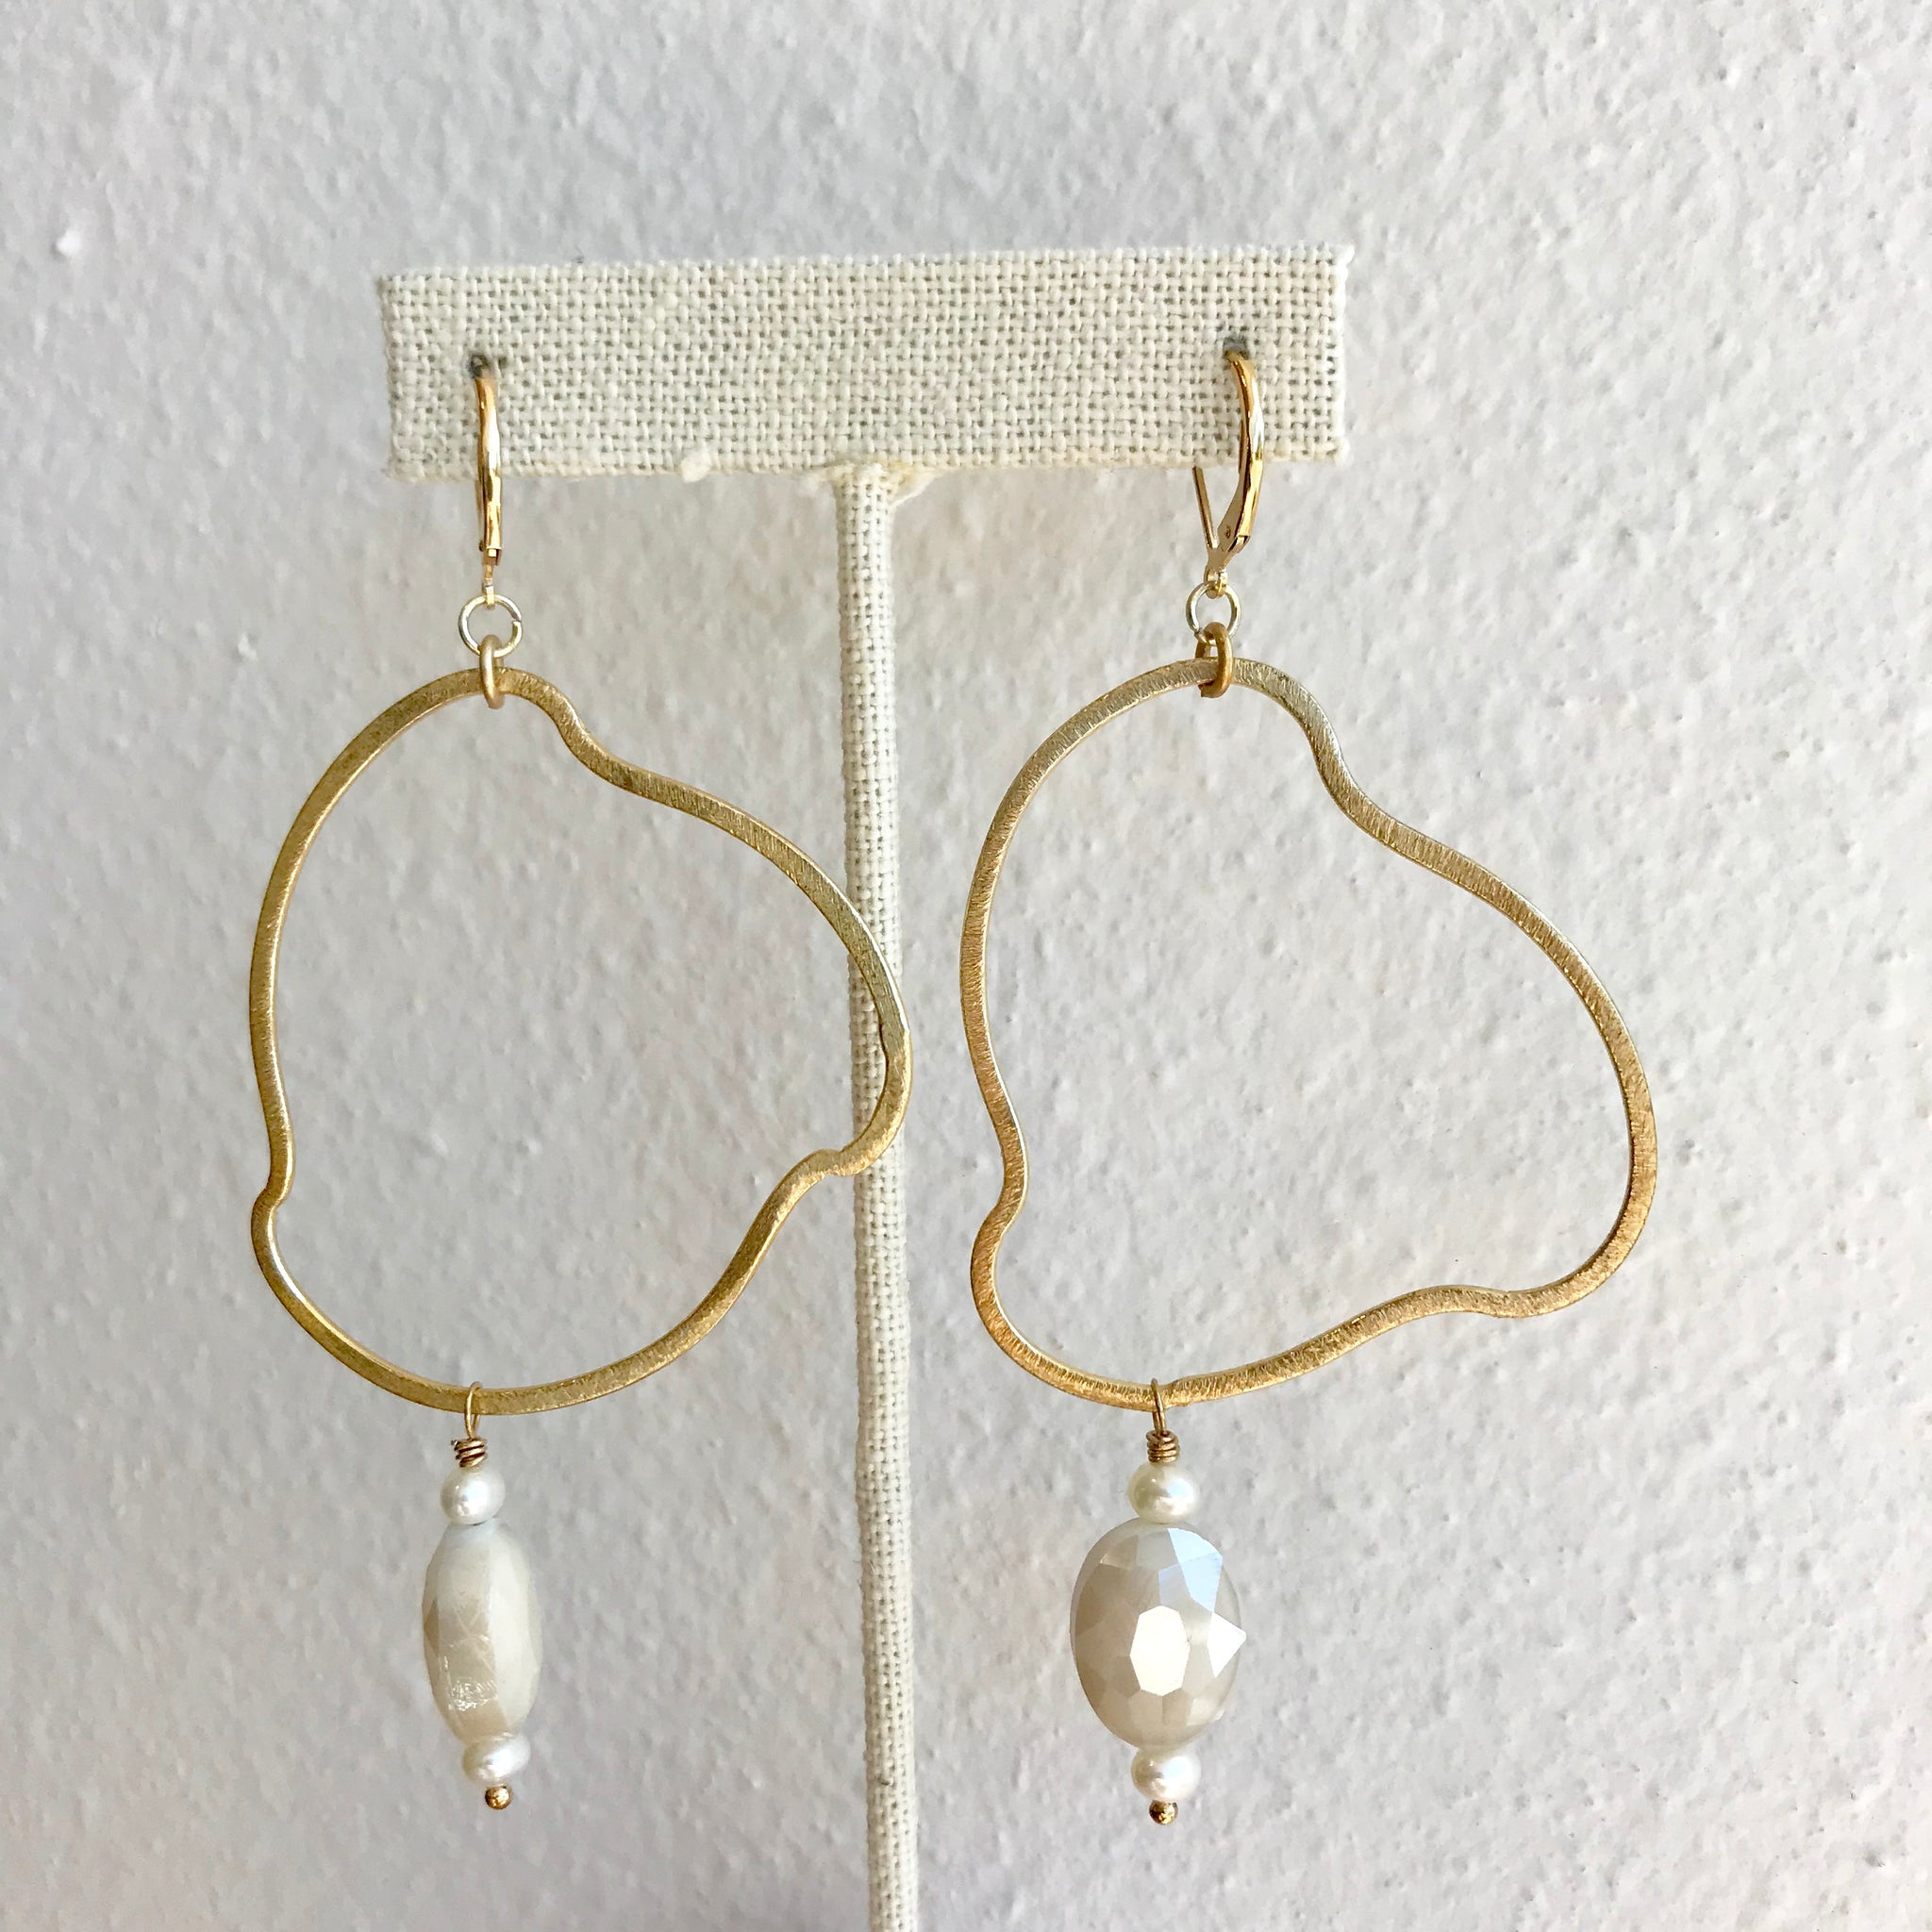 Irregular Hoop with Charm Earrings - 318 Art and Garden